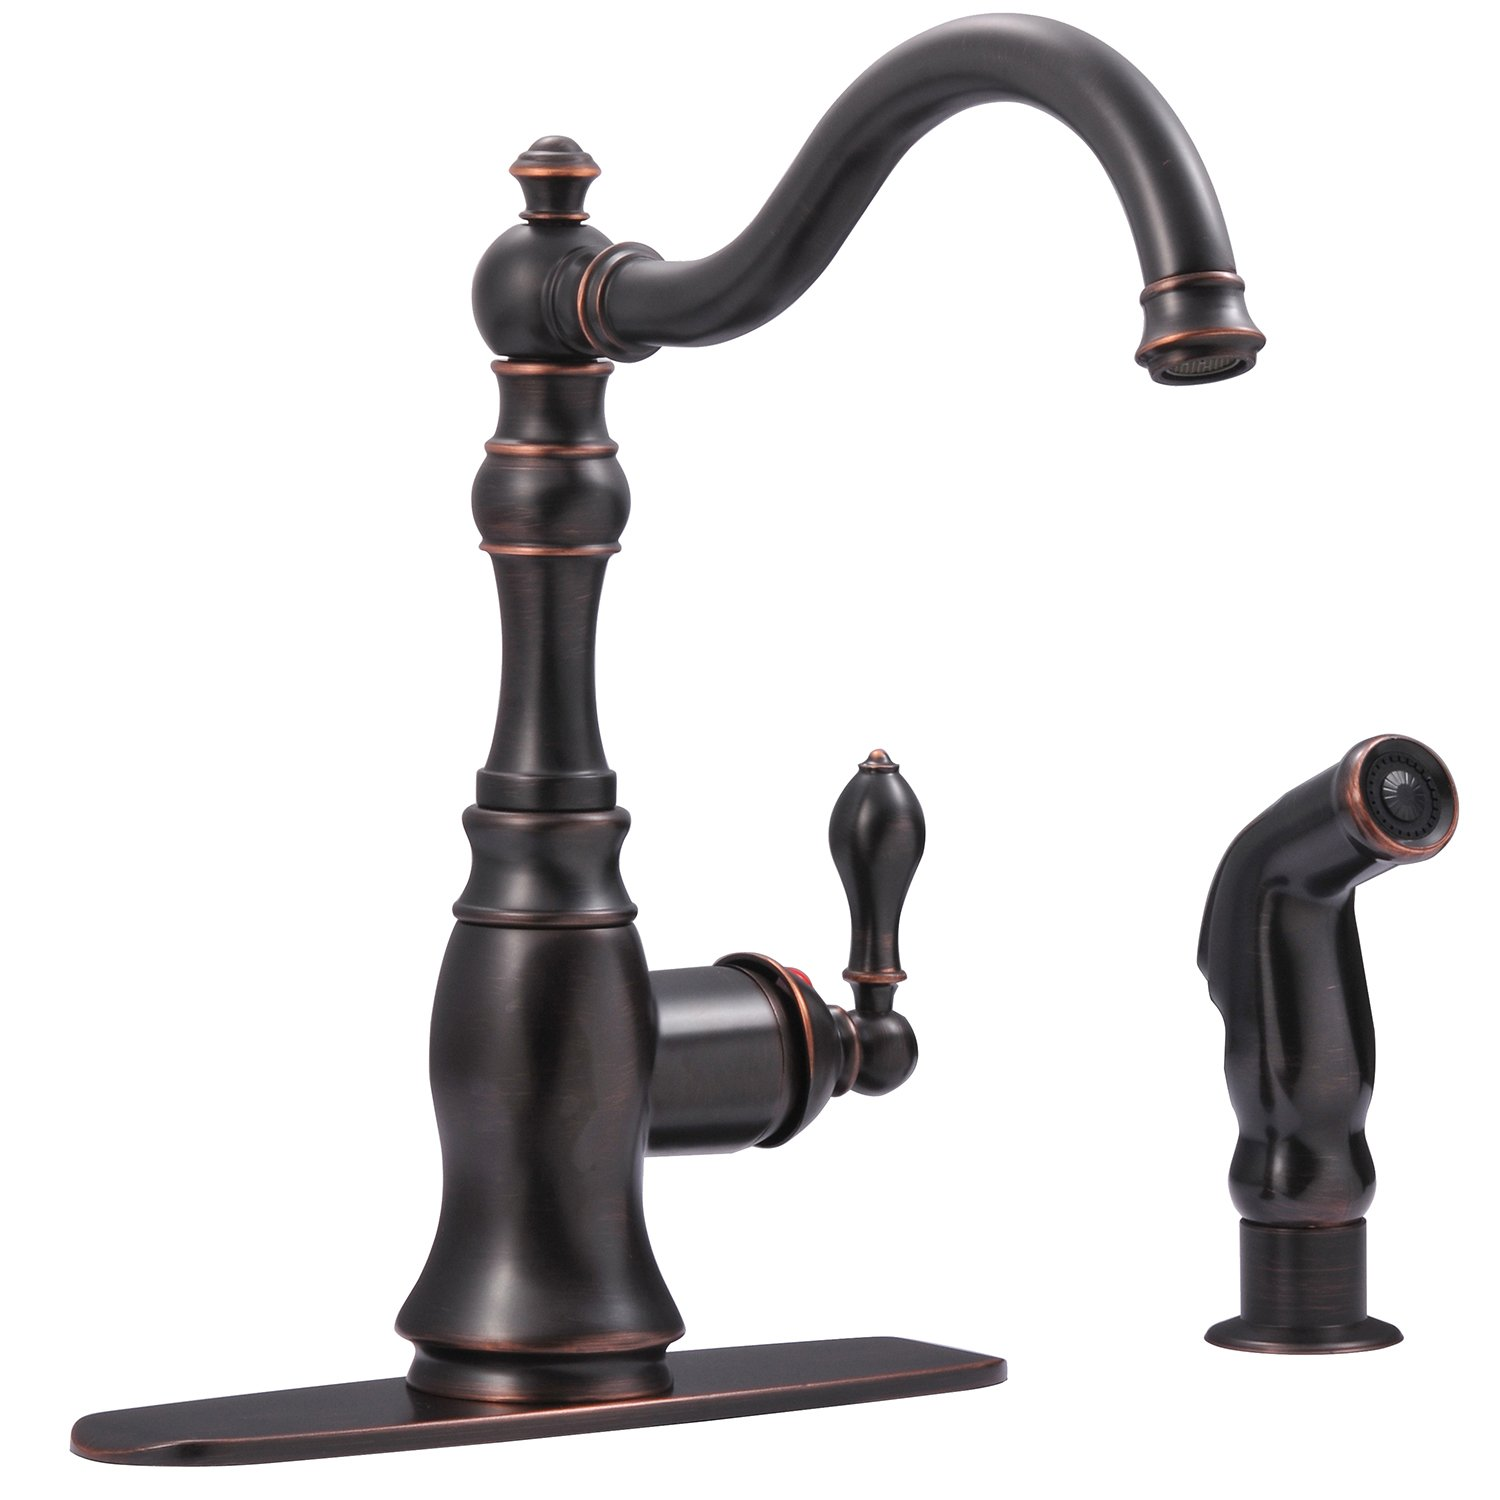 Ultra Faucets UF11245 Signature Collection Single-Handle Kitchen Faucet with Side-Spray, Oil Rubbed Bronze by Ultra Faucets